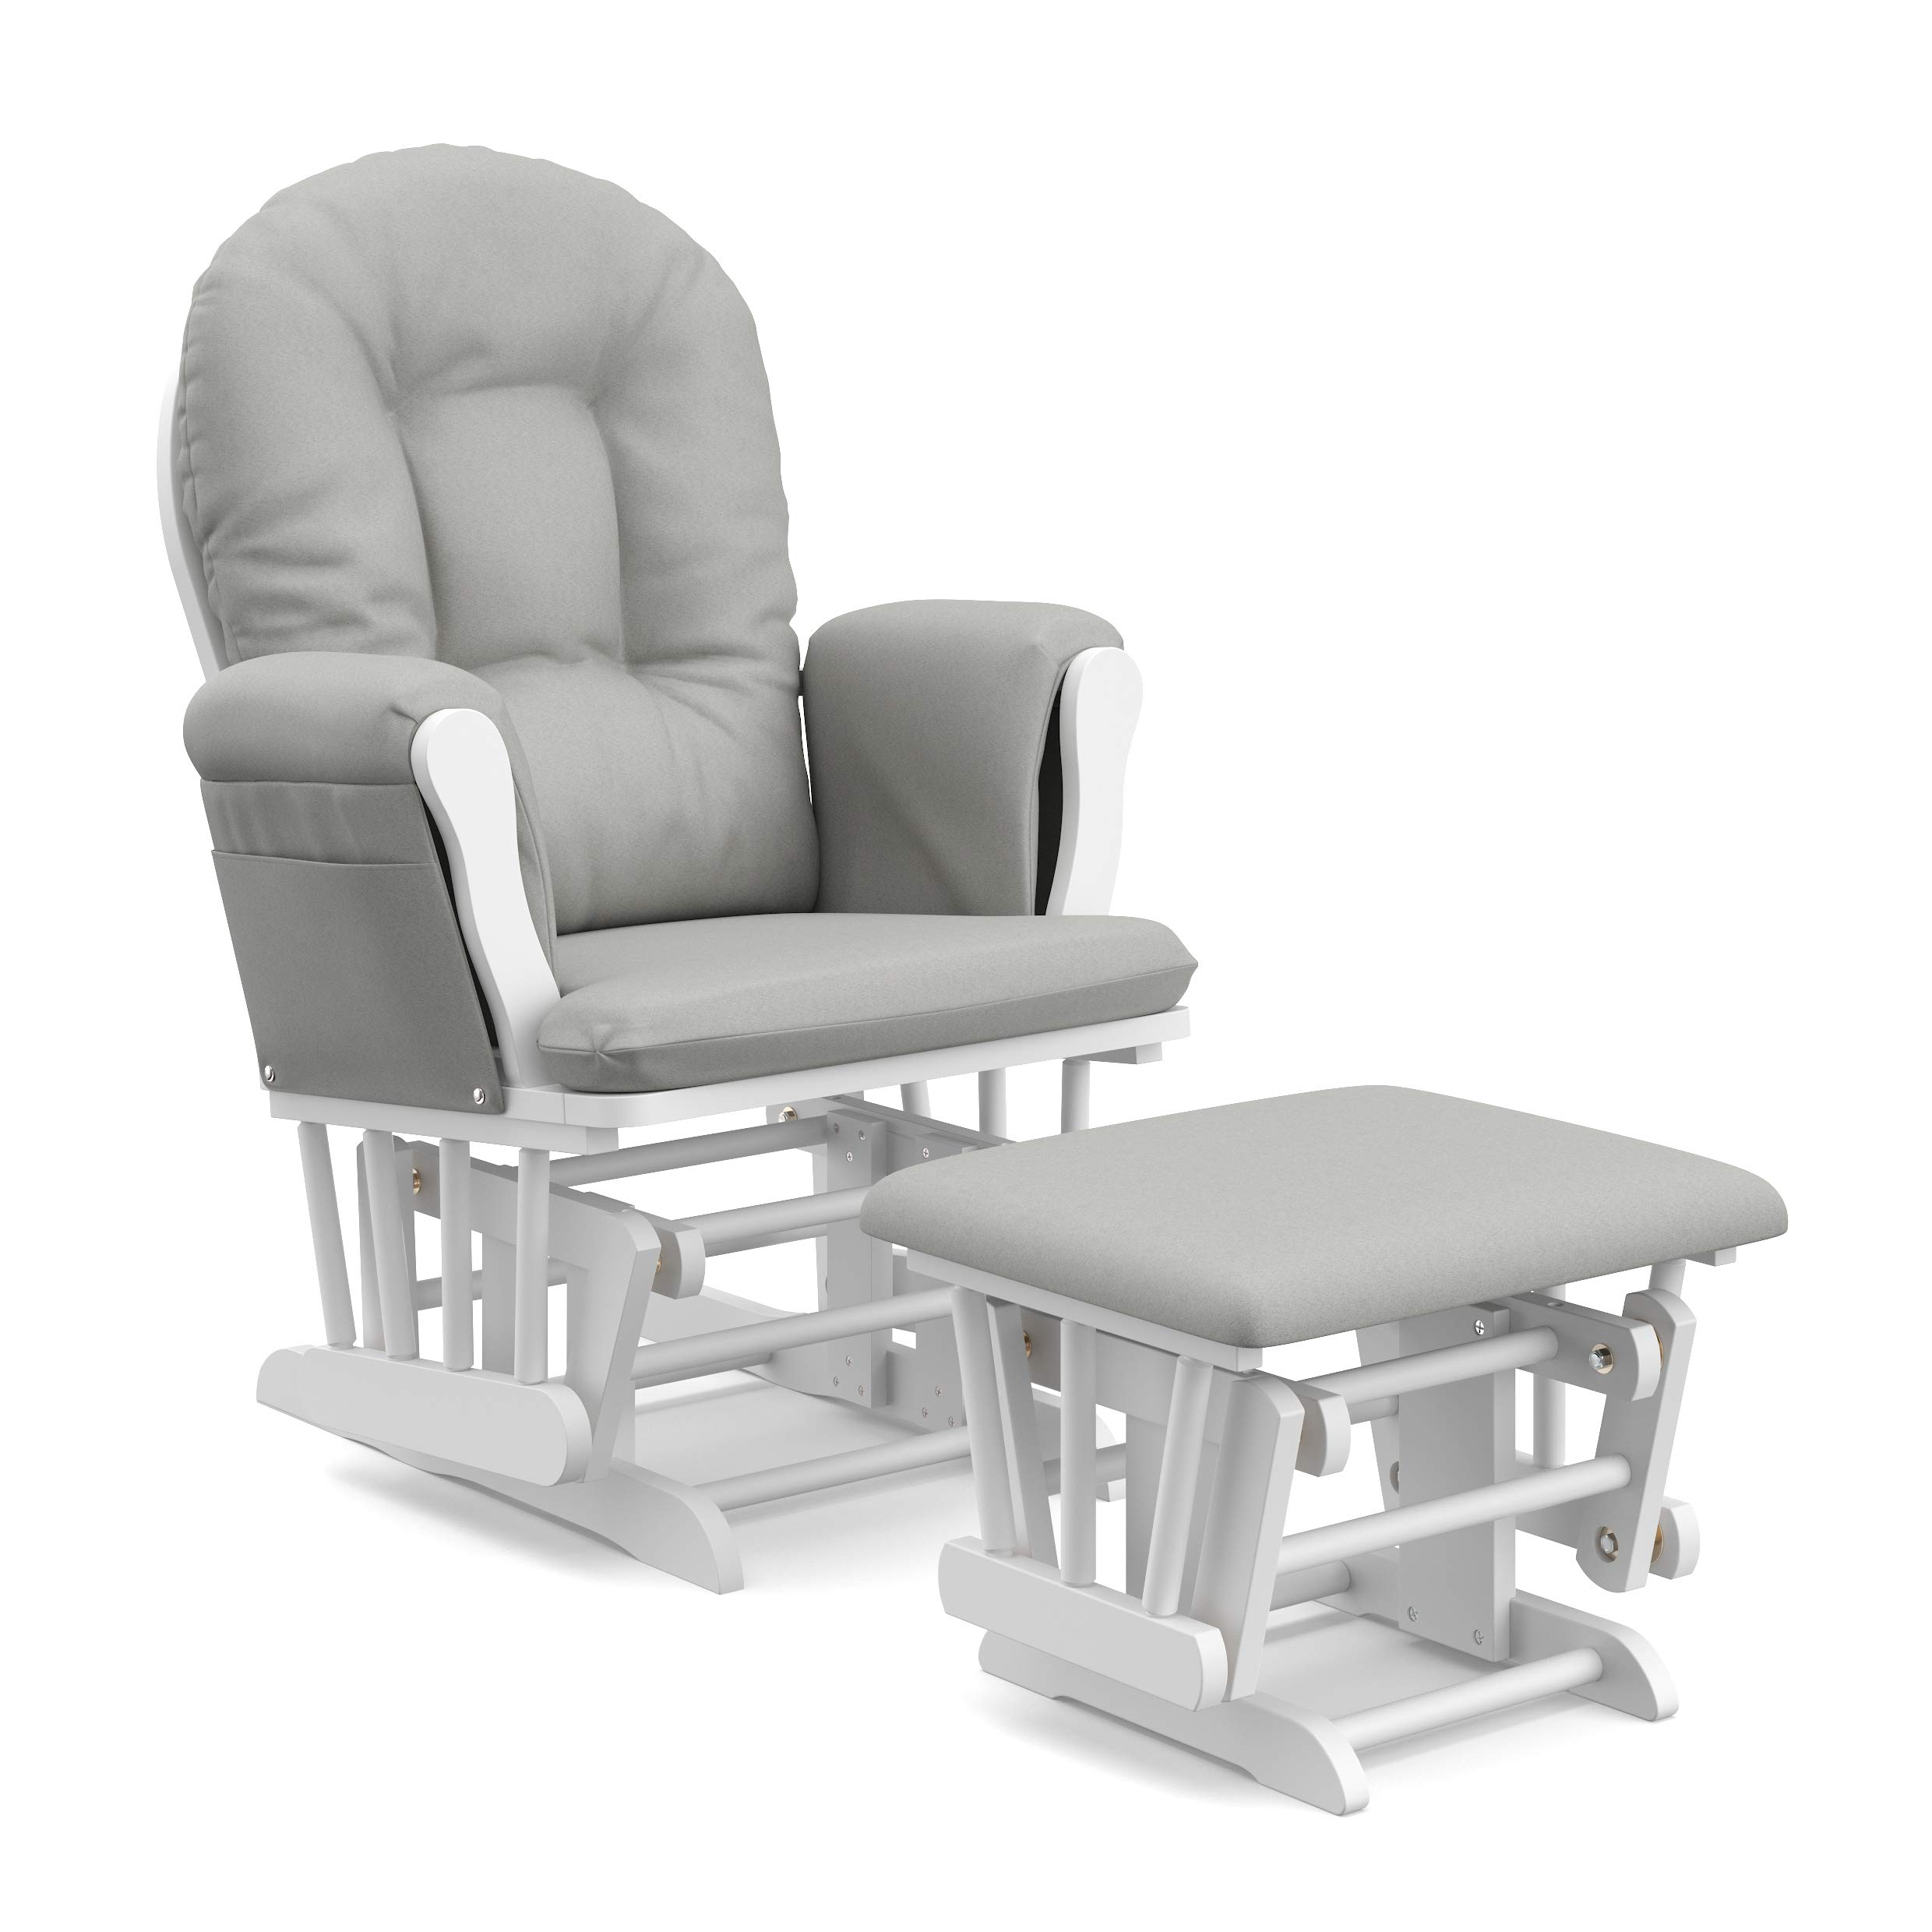 StorkCraft Hoop Glider and Ottoman Cushions, White with Light Gray by Stork Craft